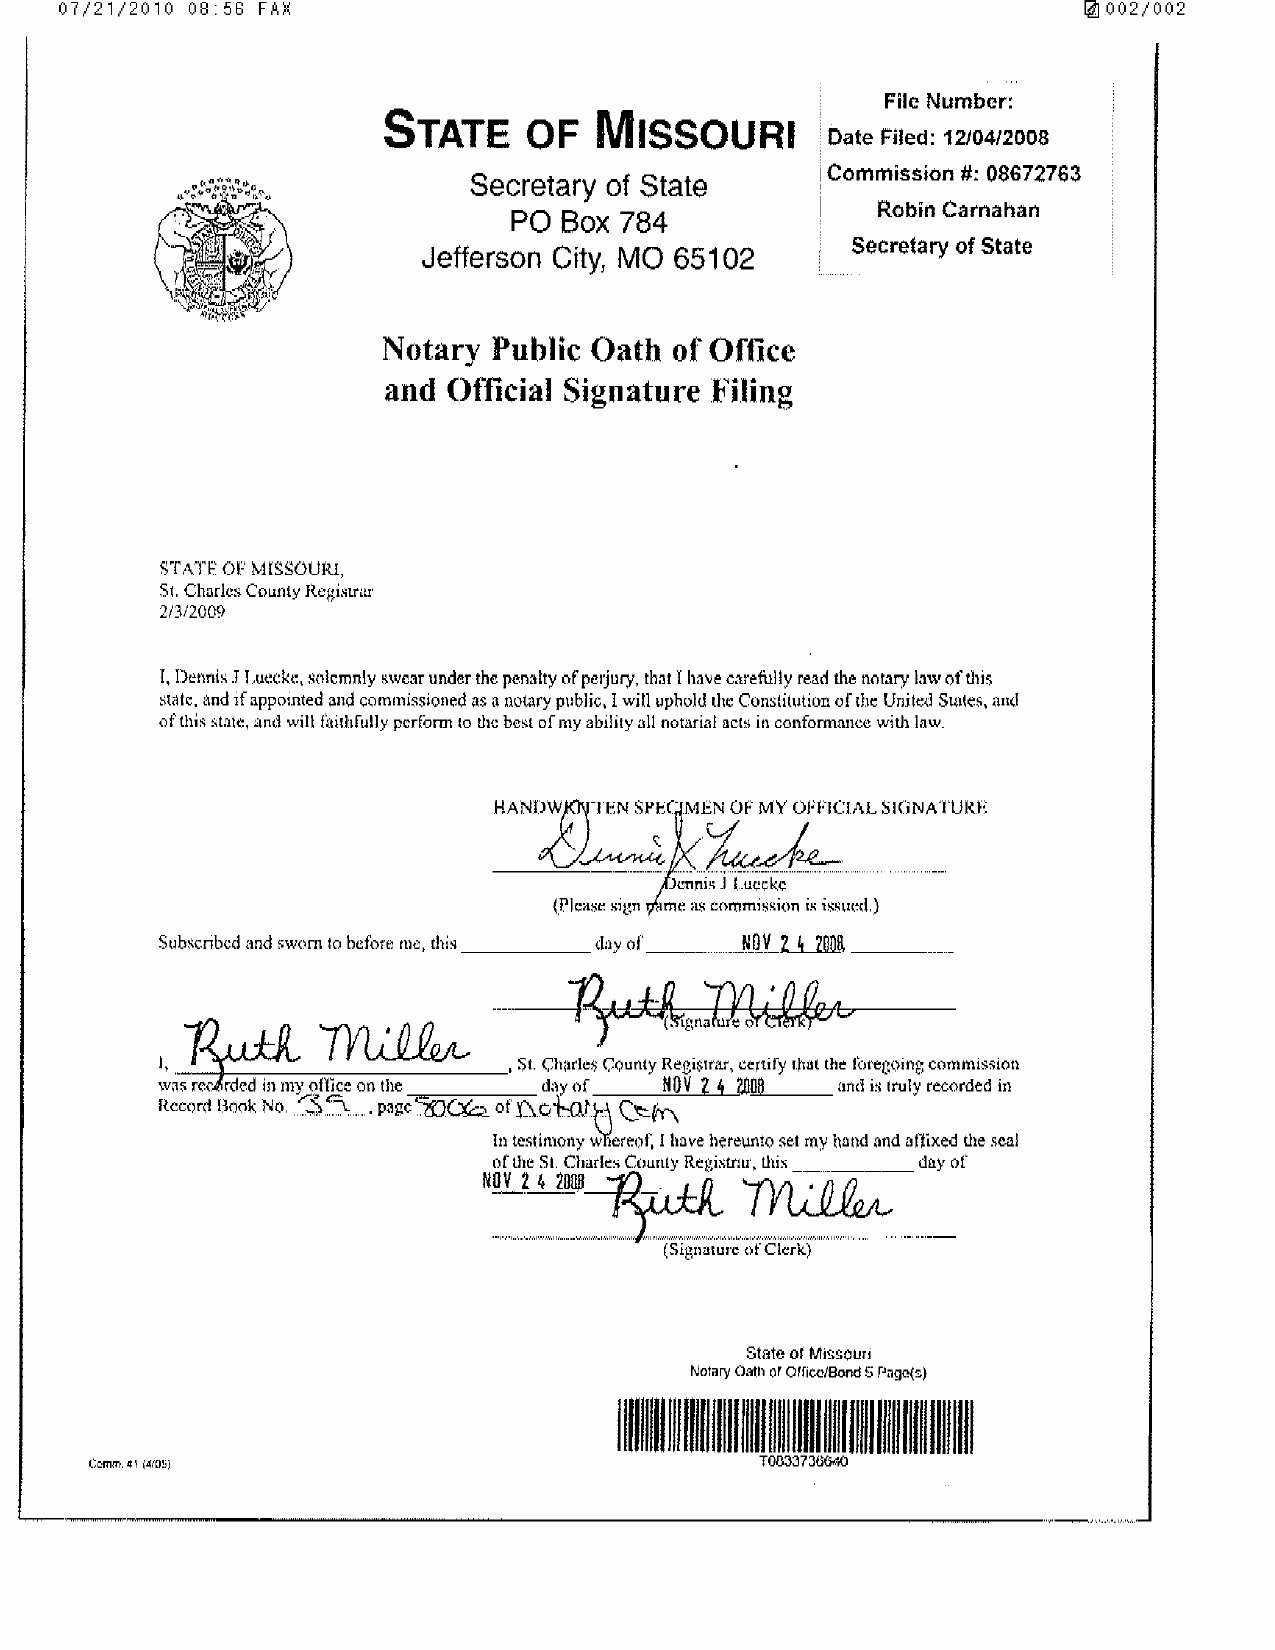 Notary Public Letter Template Best Of Operation Restoration Anne Batte